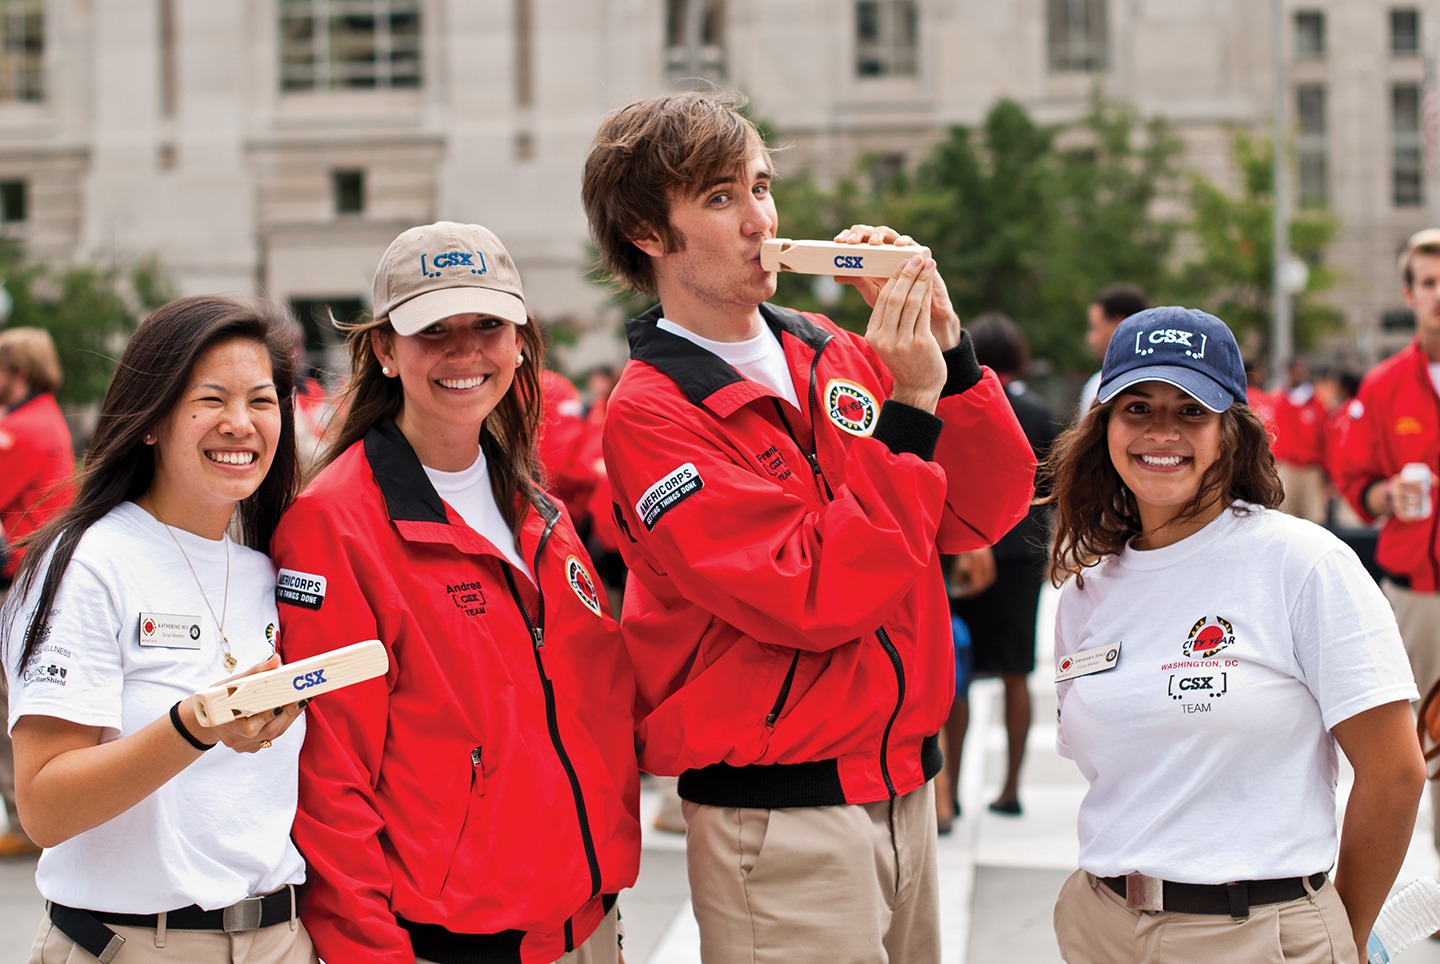 Four AmeriCorps members wearing and holding CSX branded items